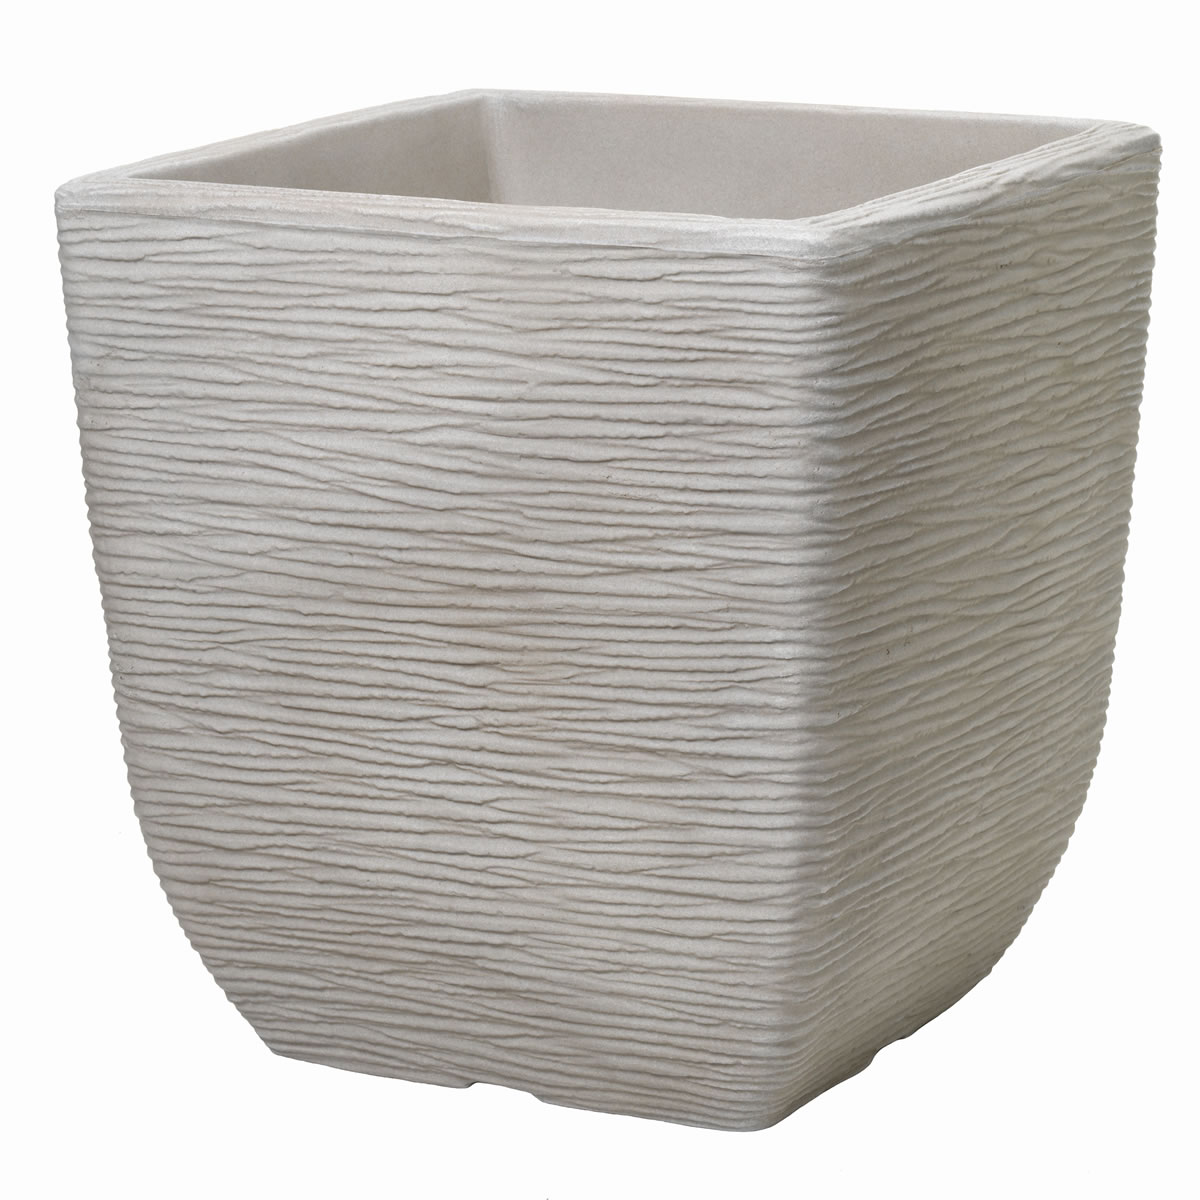 Extra image of Cotswold Square Planter - 32cm